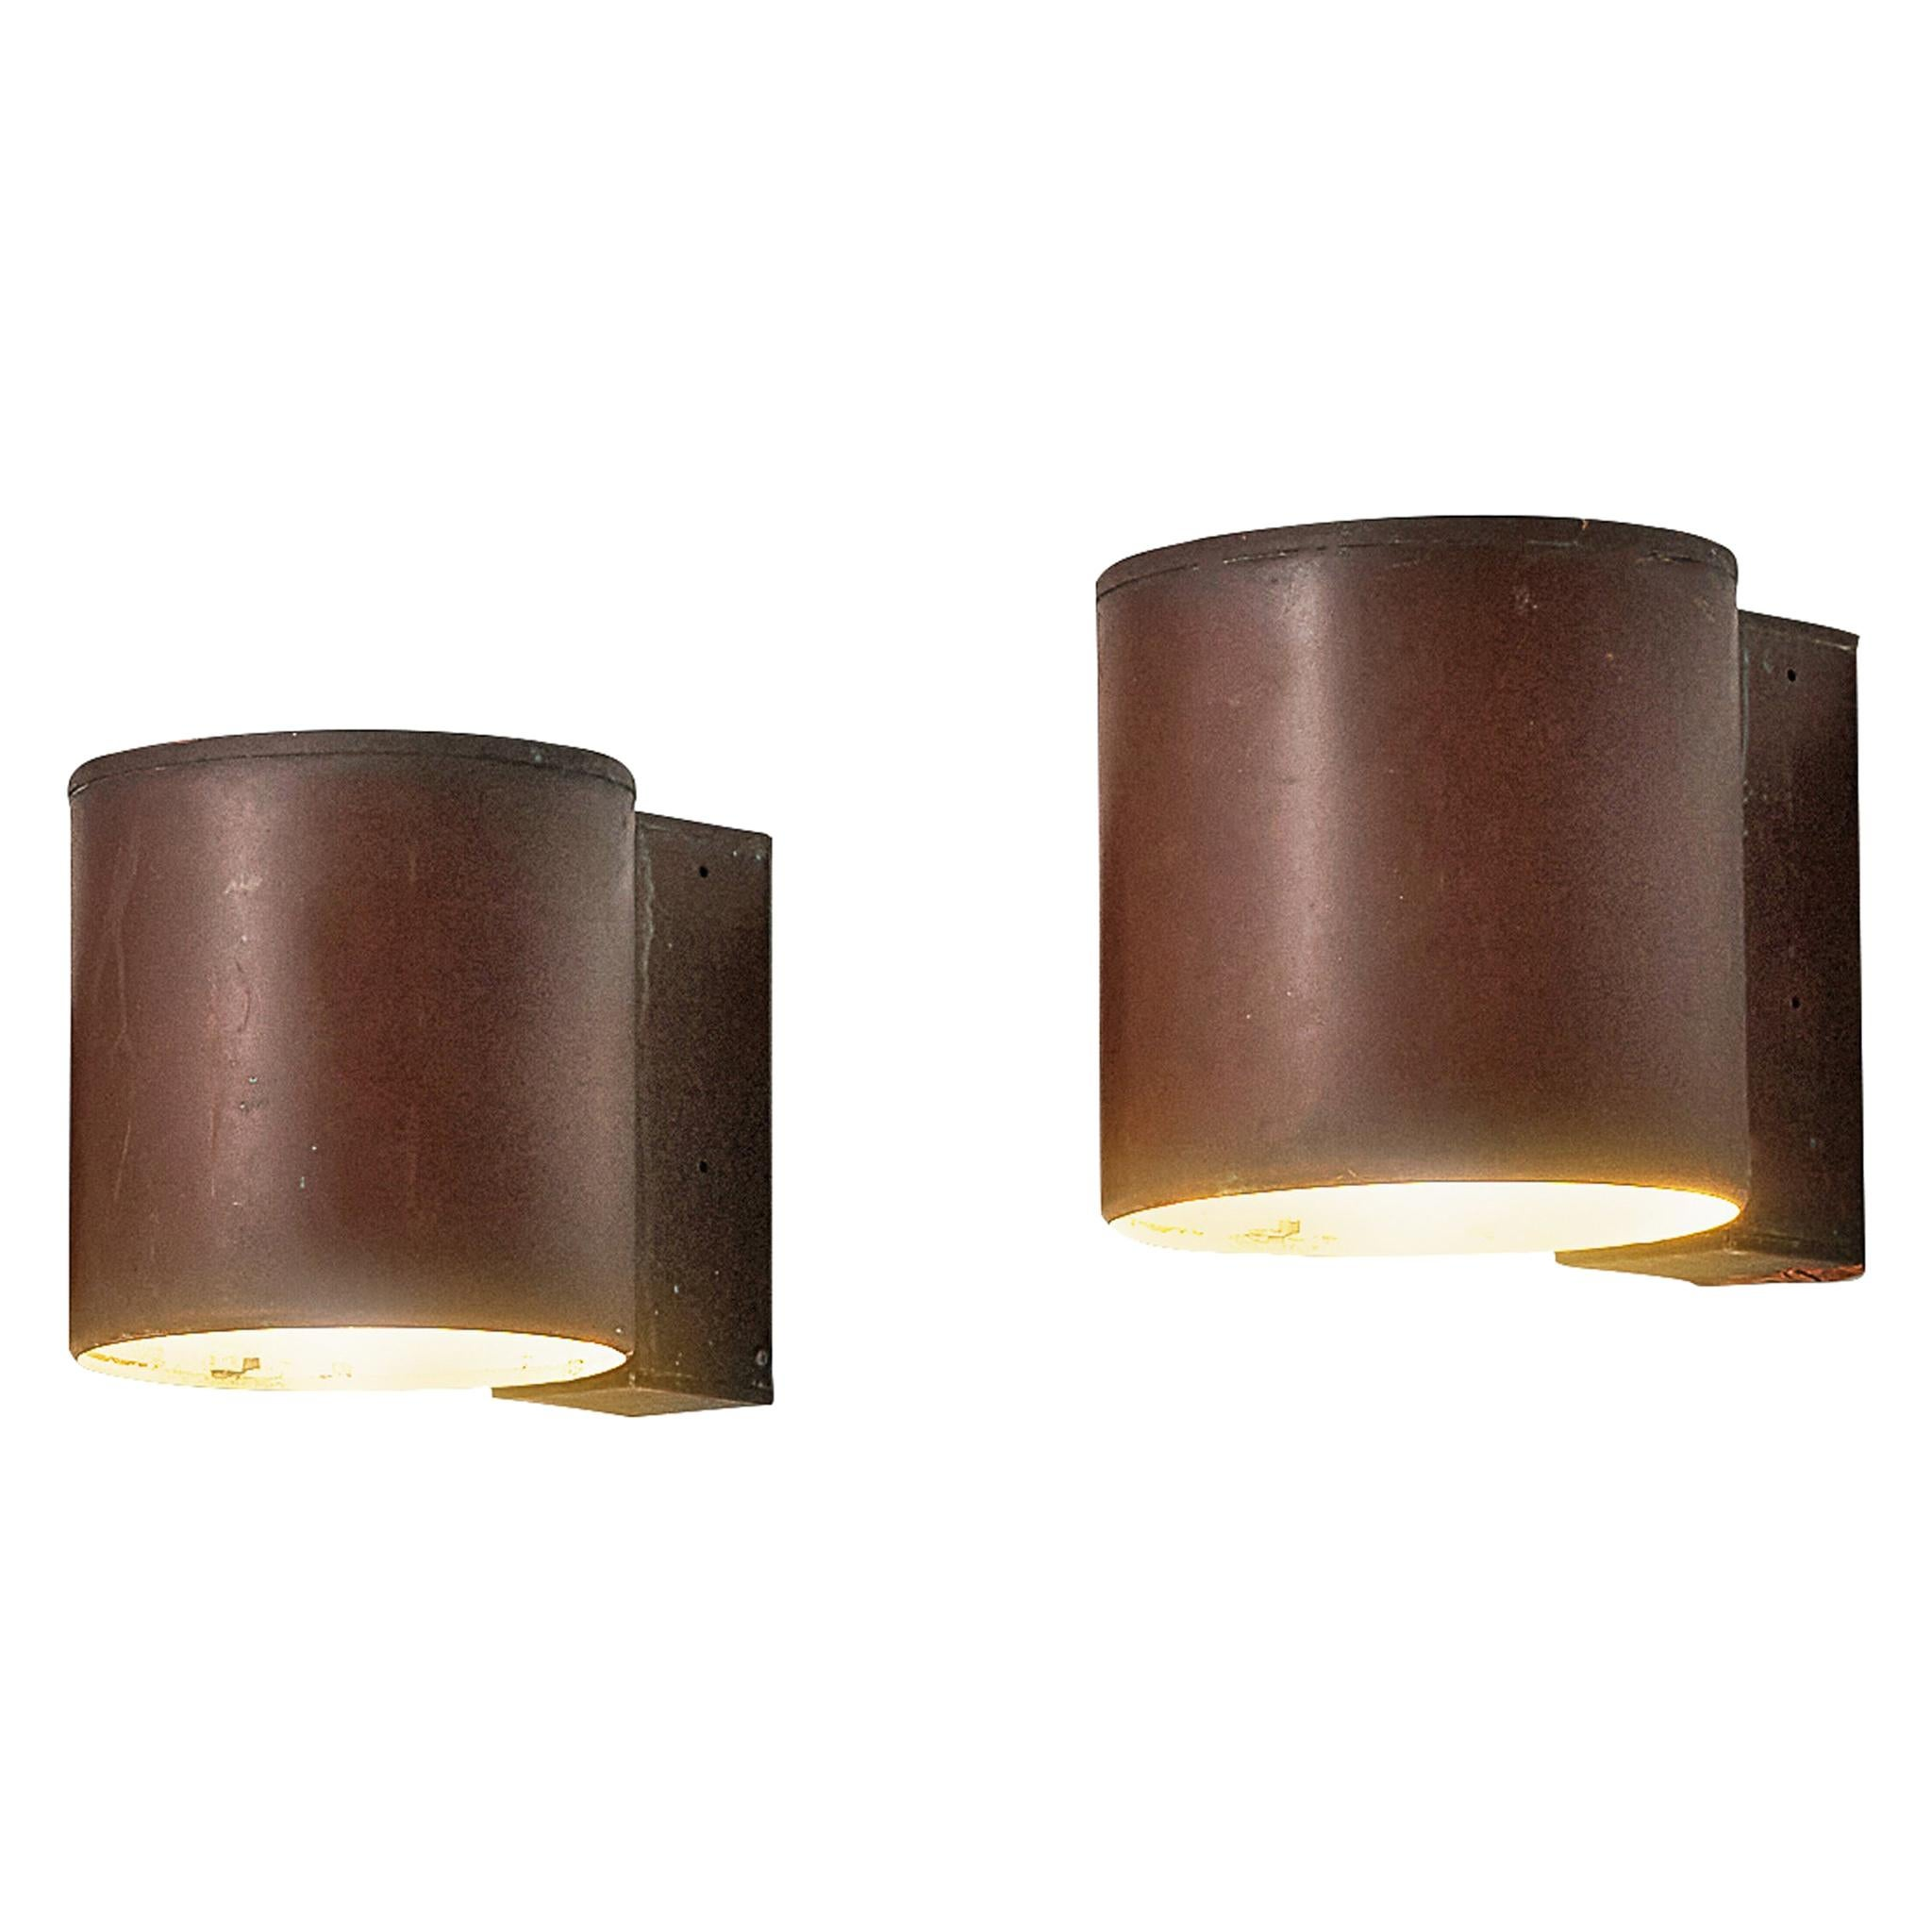 Large Swedish Wall Lights in Patinated Copper